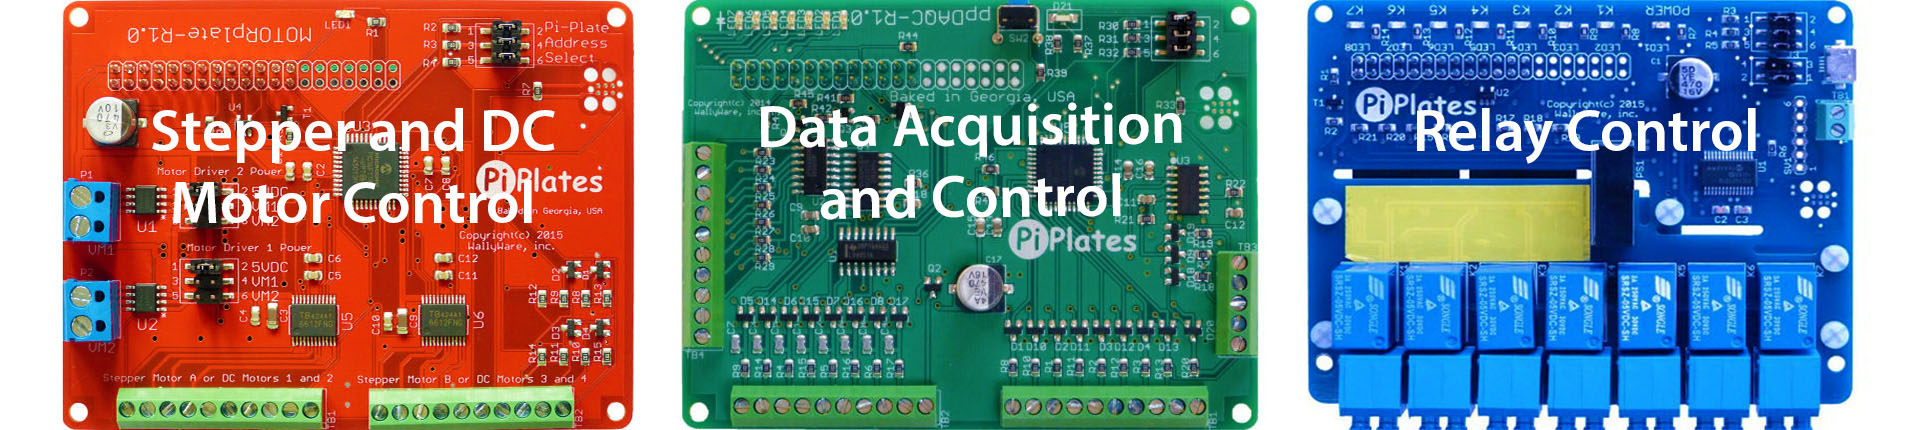 Pi Plates Dc Motor Control Using Relay In Addition Due To Equipment Calibration All Daqc2plates Orders Will Be Delayed Until 11 12